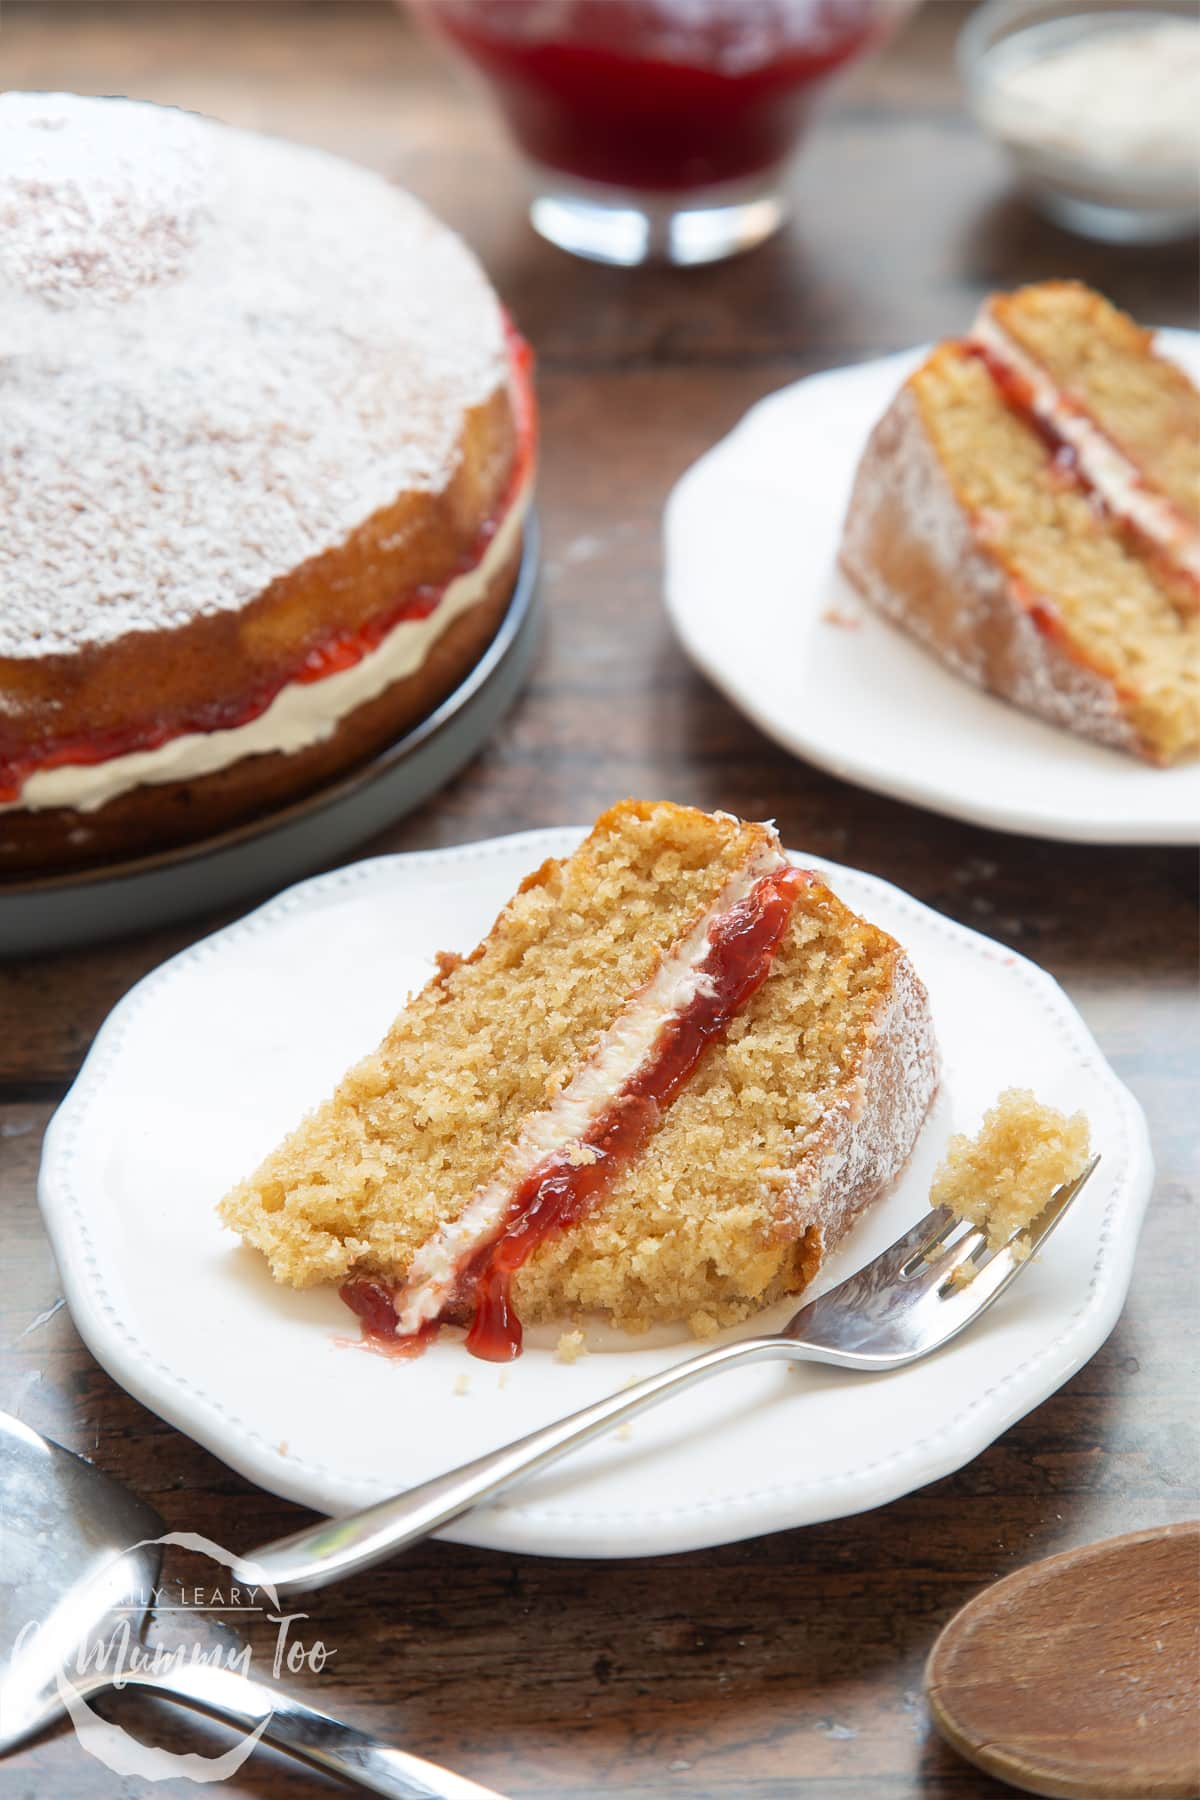 A slice of golden syrup sponge cake on a white decorate plate with a cake fork on the side. In the background there's an additional slice of cake as well as the cake as a whole.